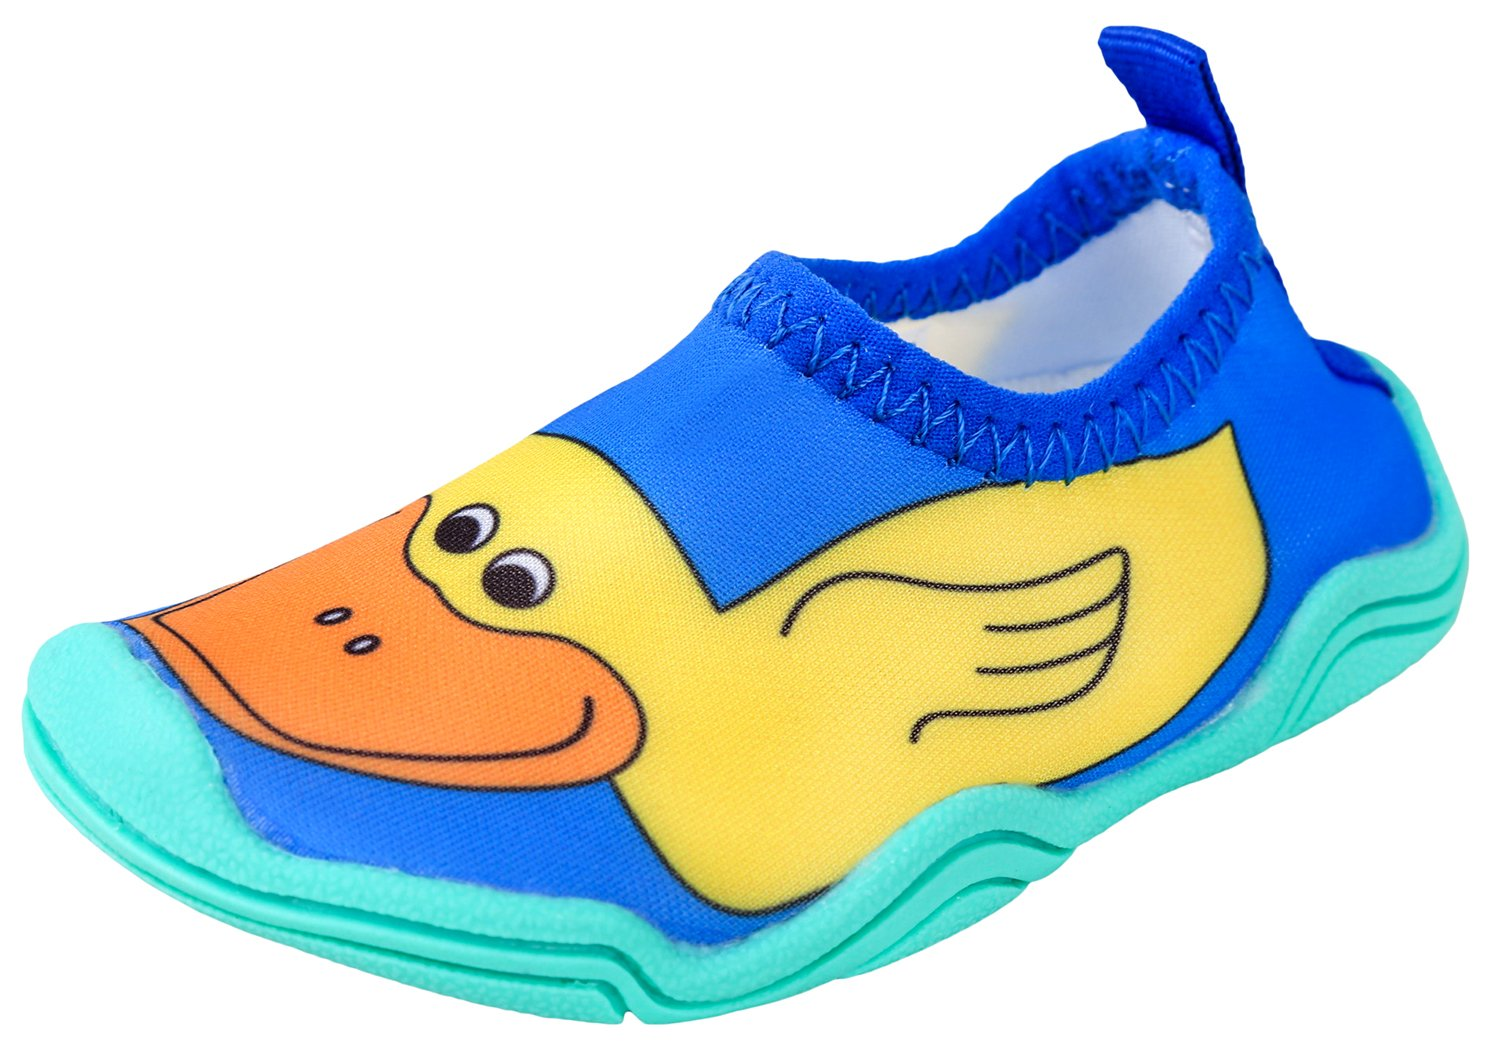 Lil' Fins Water Pals Kid Shoes | Beach | Summer Fun | Water Shoes | Quick Dry | Swim Shoes | Duck 1/2